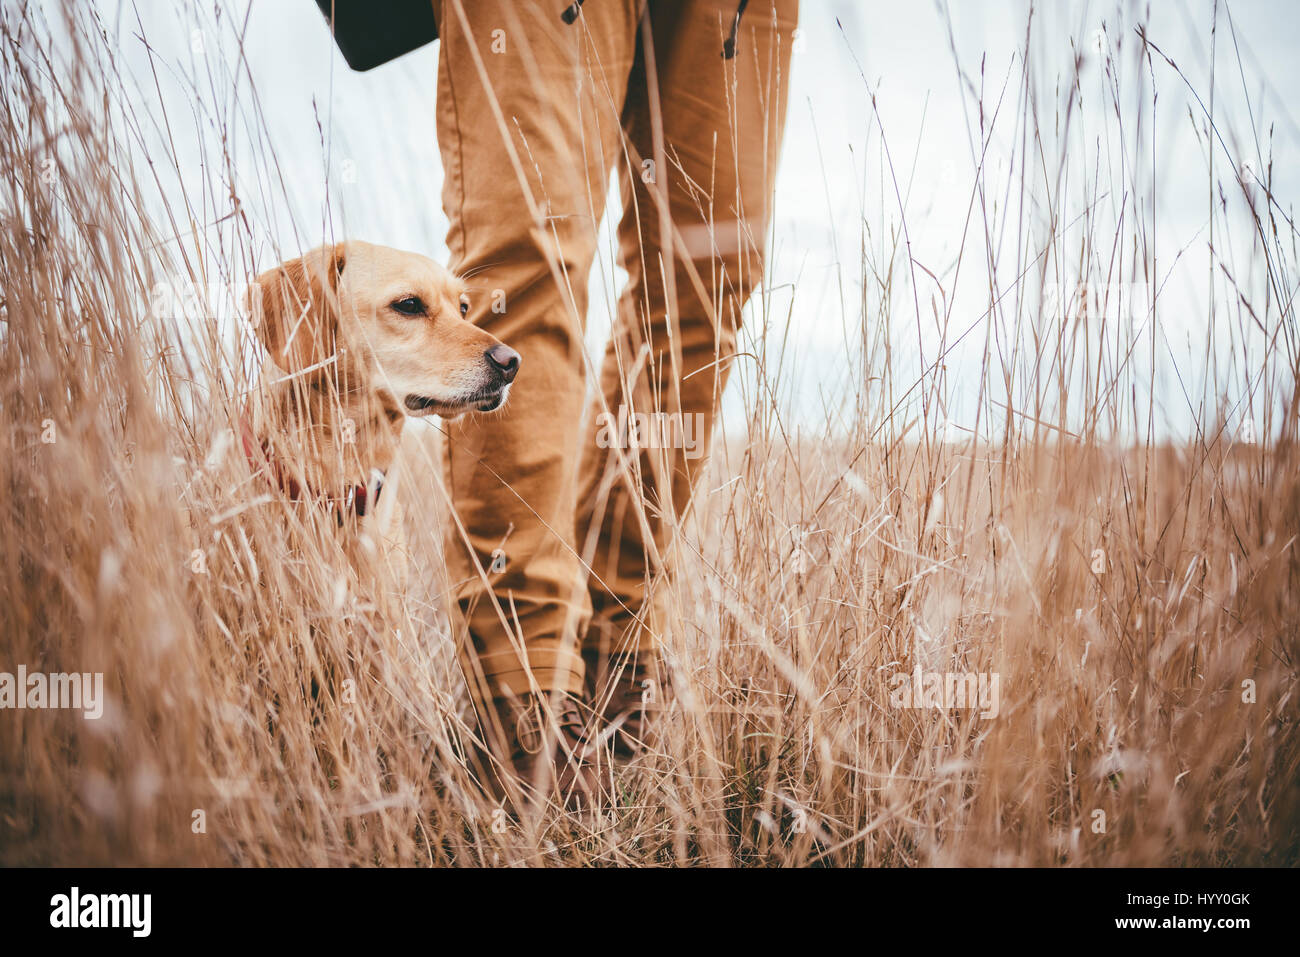 Hiker and dog standing in high grass Stock Photo